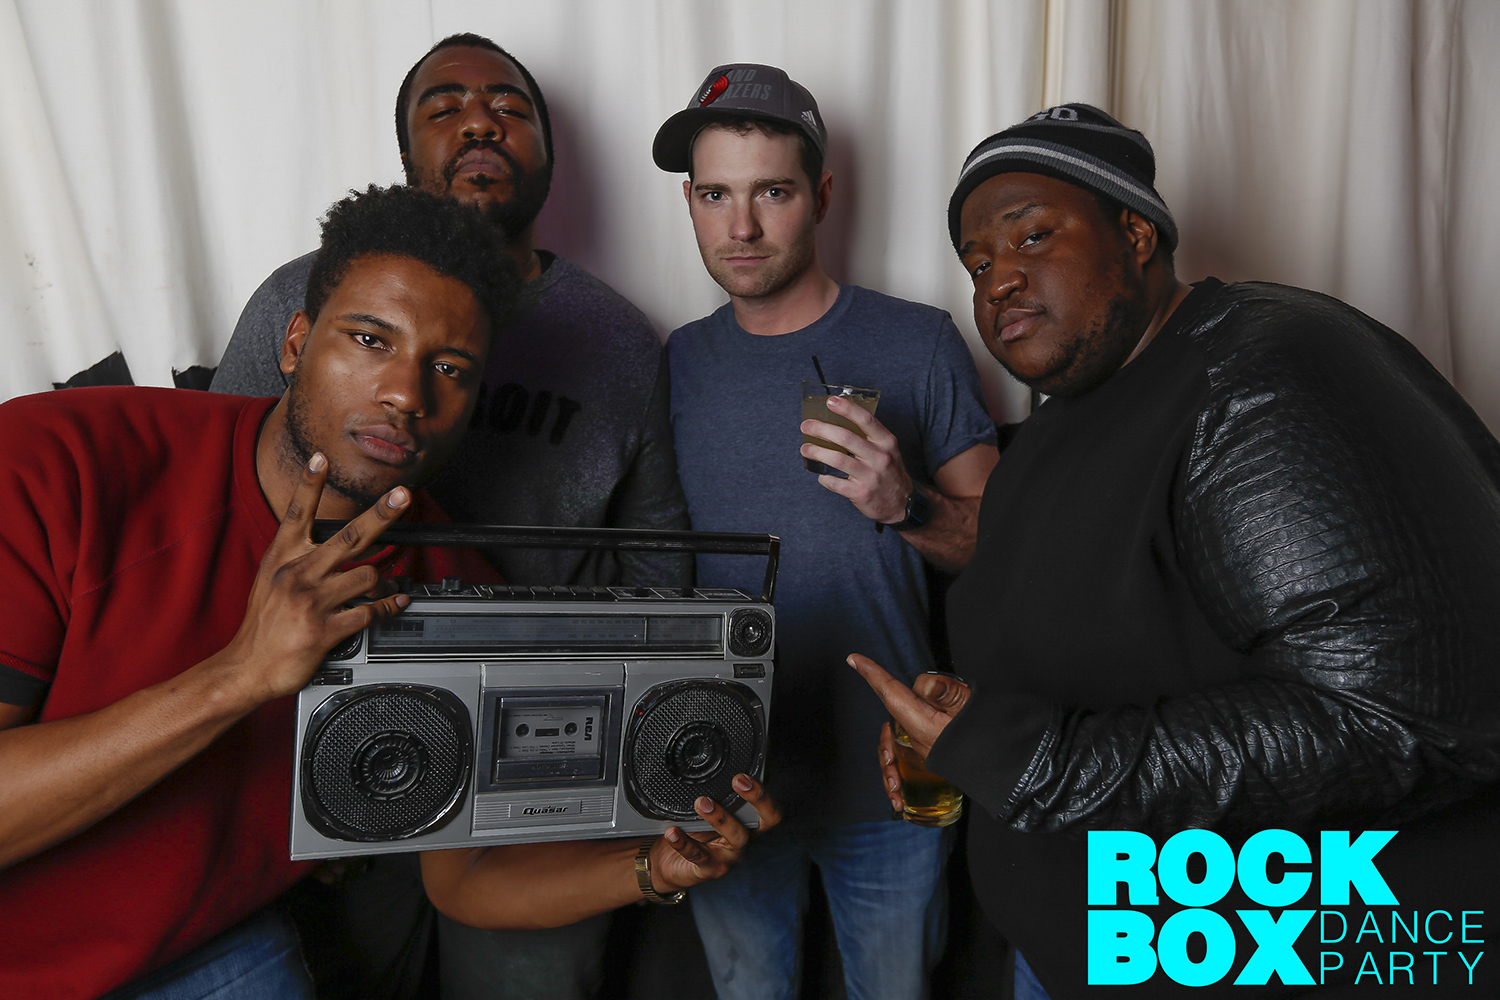 Rock box feb 2015-0155.jpg